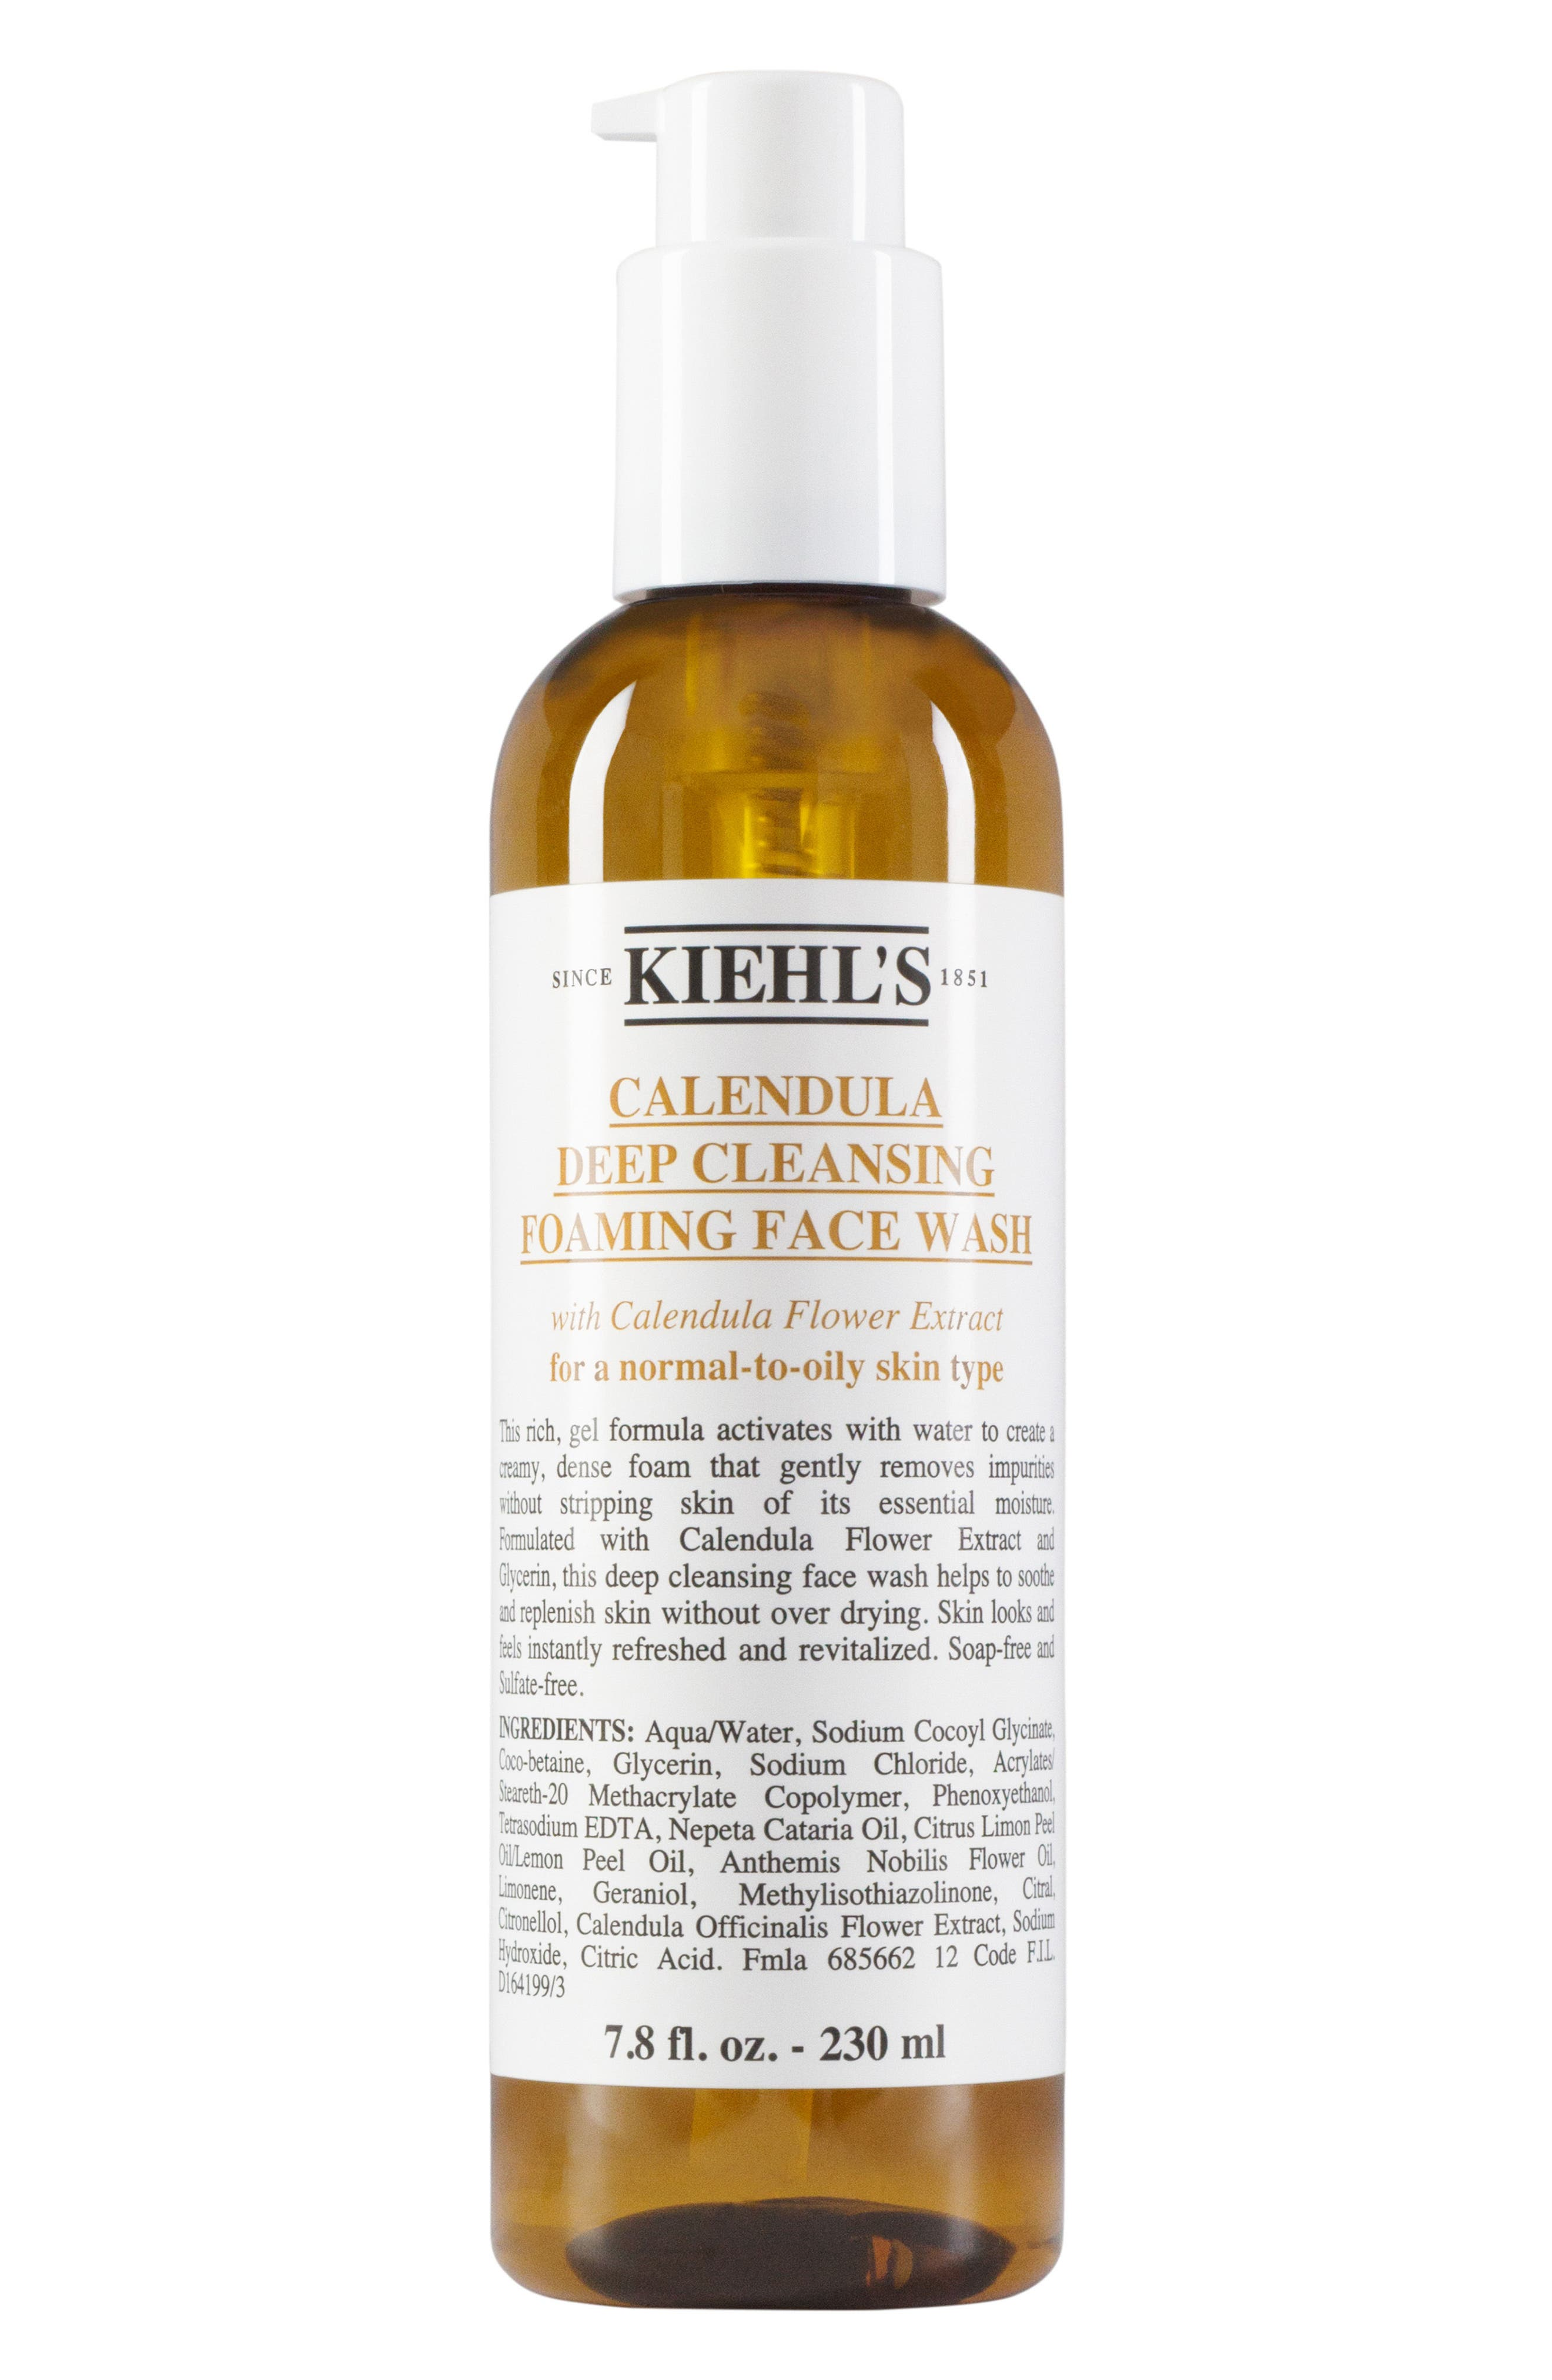 Calendula Deep Cleansing Foaming Face Wash for Normal-to-Oily Skin,                             Alternate thumbnail 2, color,                             NO COLOR